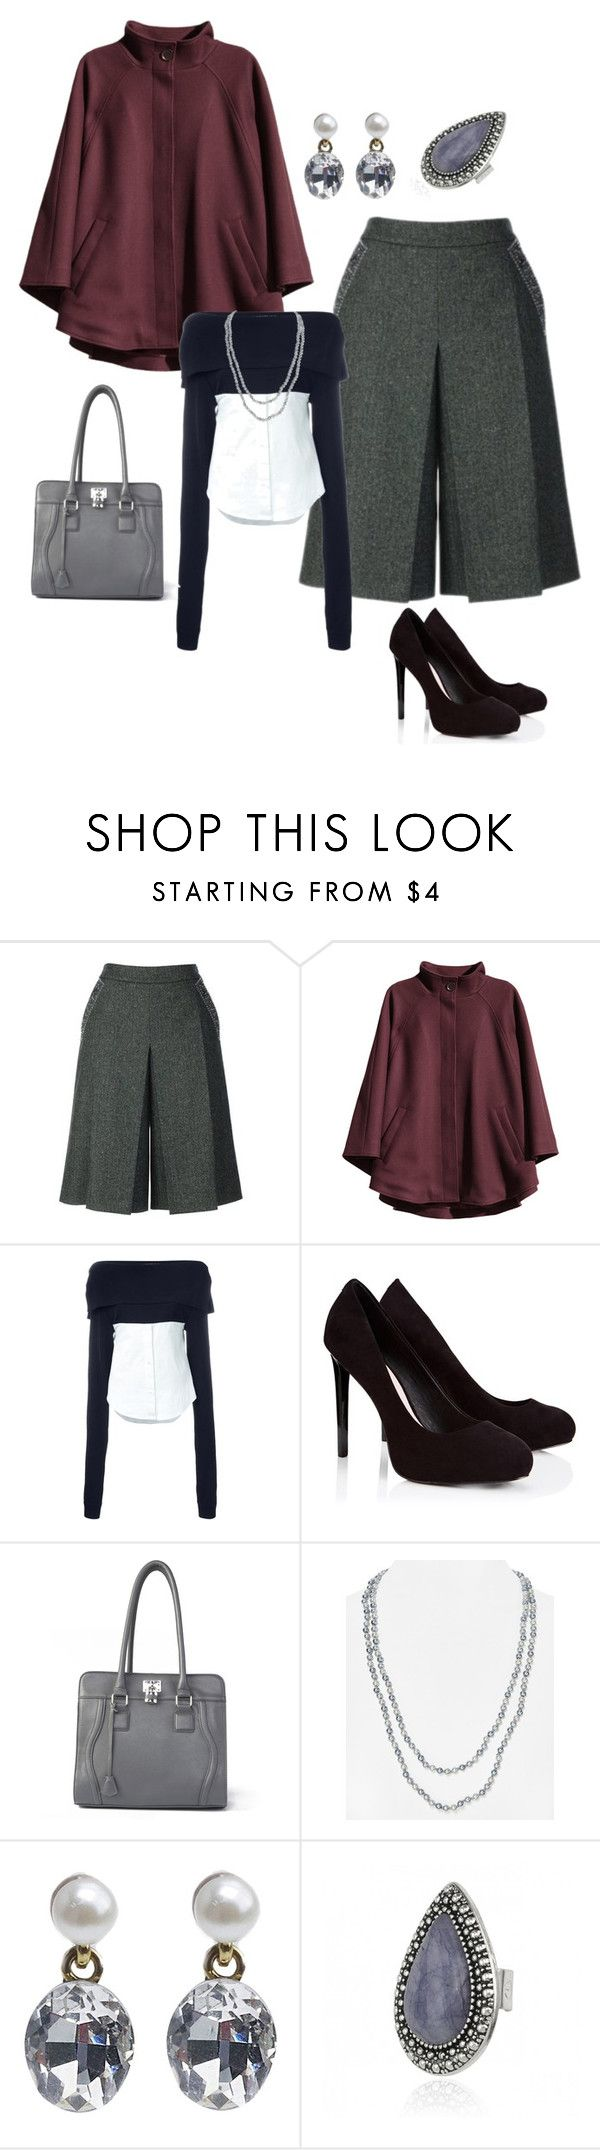 """Athens 28-10-2015"" by antiadamo on Polyvore featuring H&M, Jacquemus, Lipsy and Carolee"